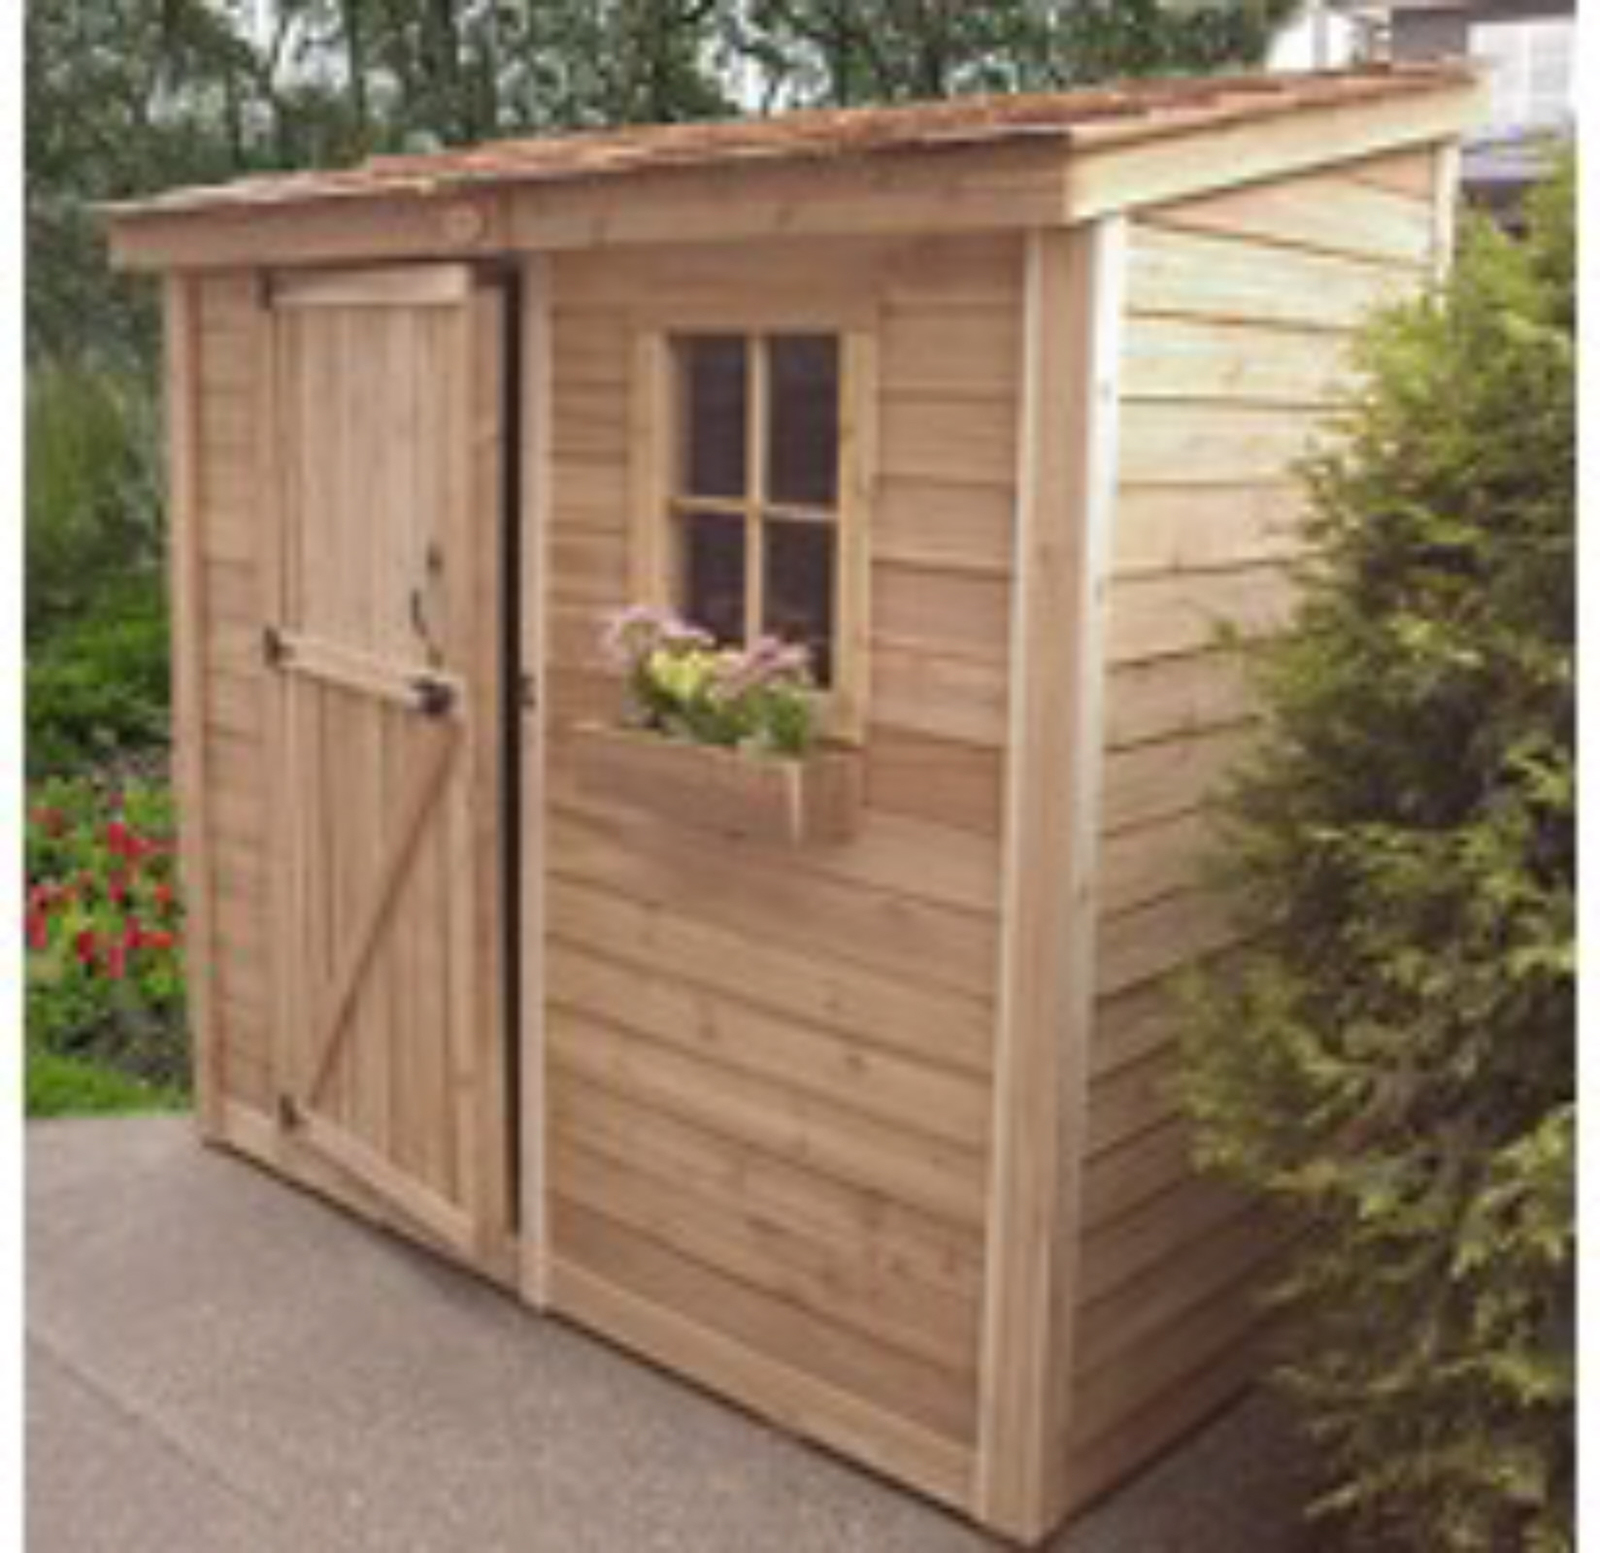 Space Saver Storage Shed 8 39 X 4 39 Outdoor Storage Shed Wood Shed Too